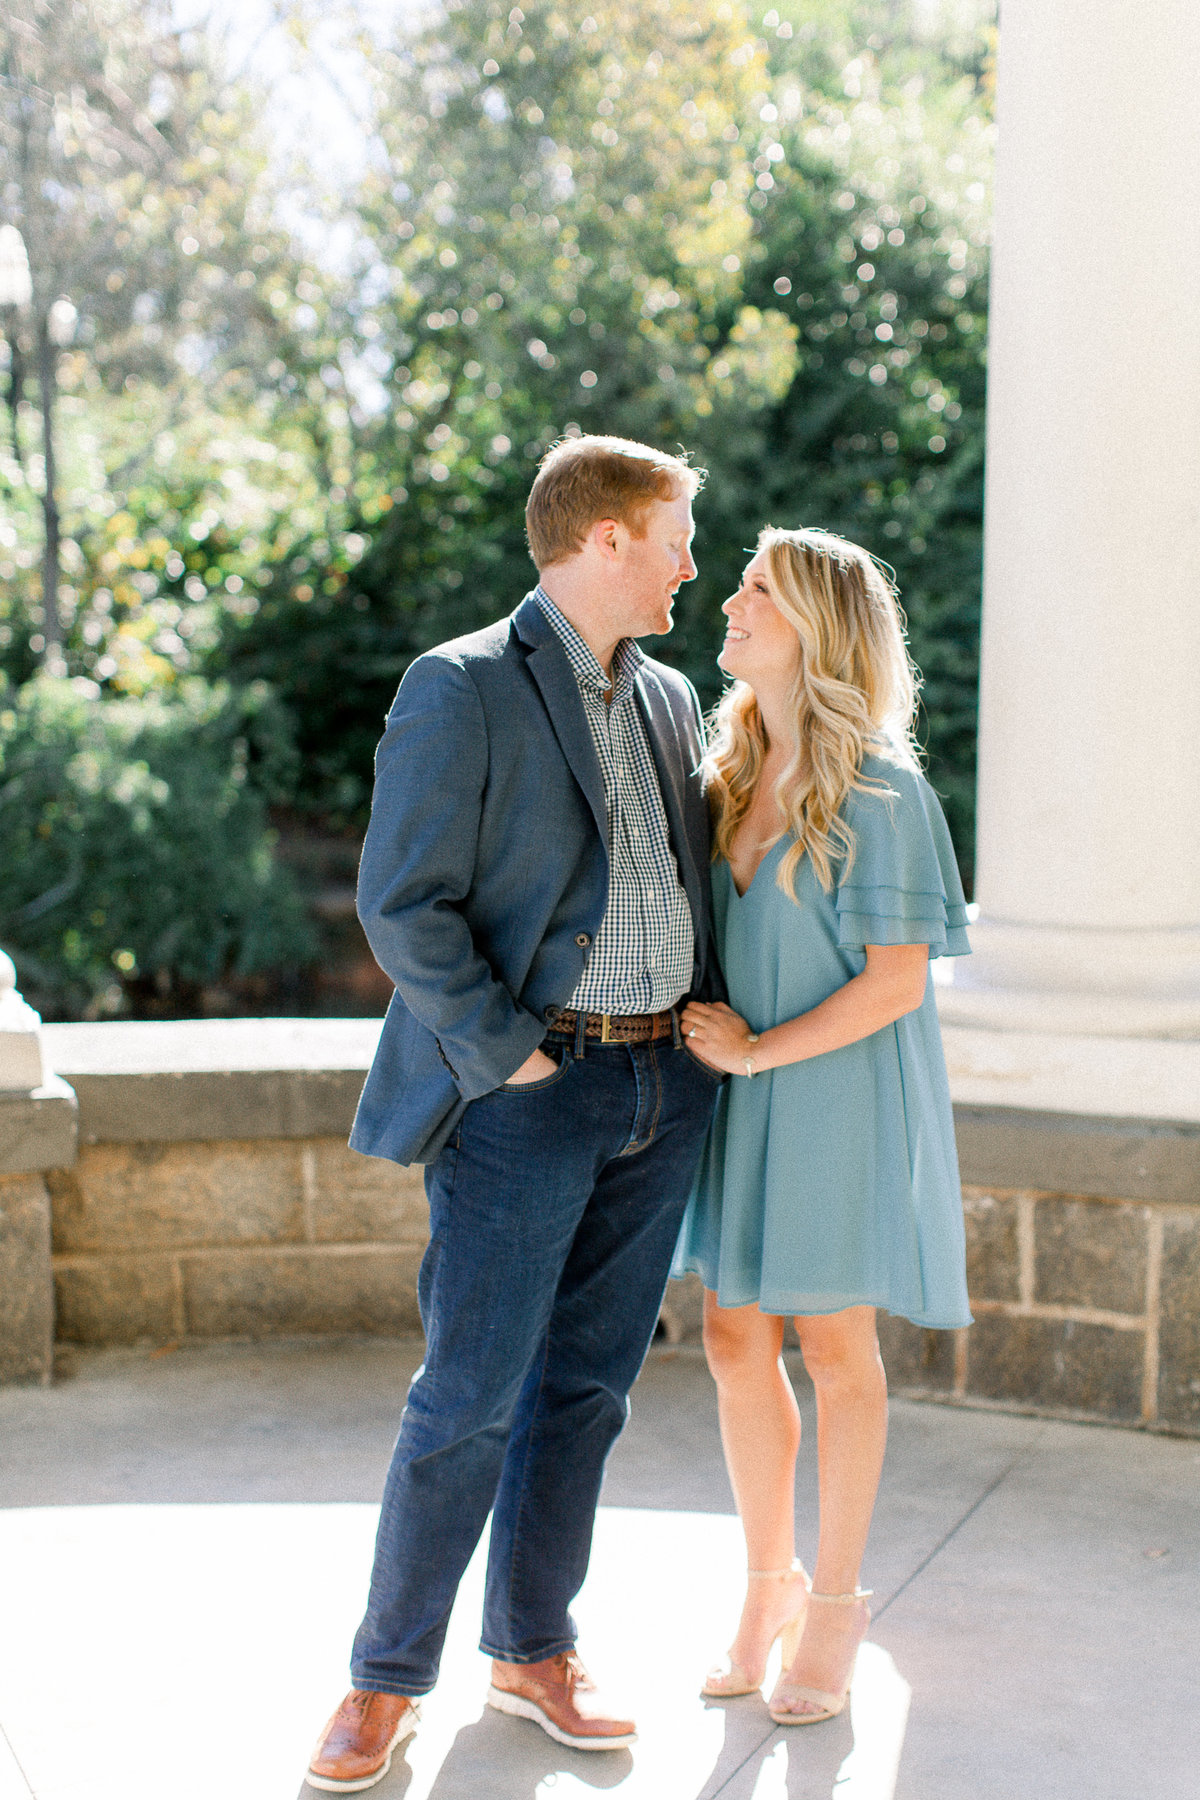 Lizzie Baker Photo _ Atlanta Engagement Photographer _ Atlanta Wedding Photographer _ Biltmore Wedding Photographer _ Foxhall Wedding Photographer _ Yew Dell Wedding18